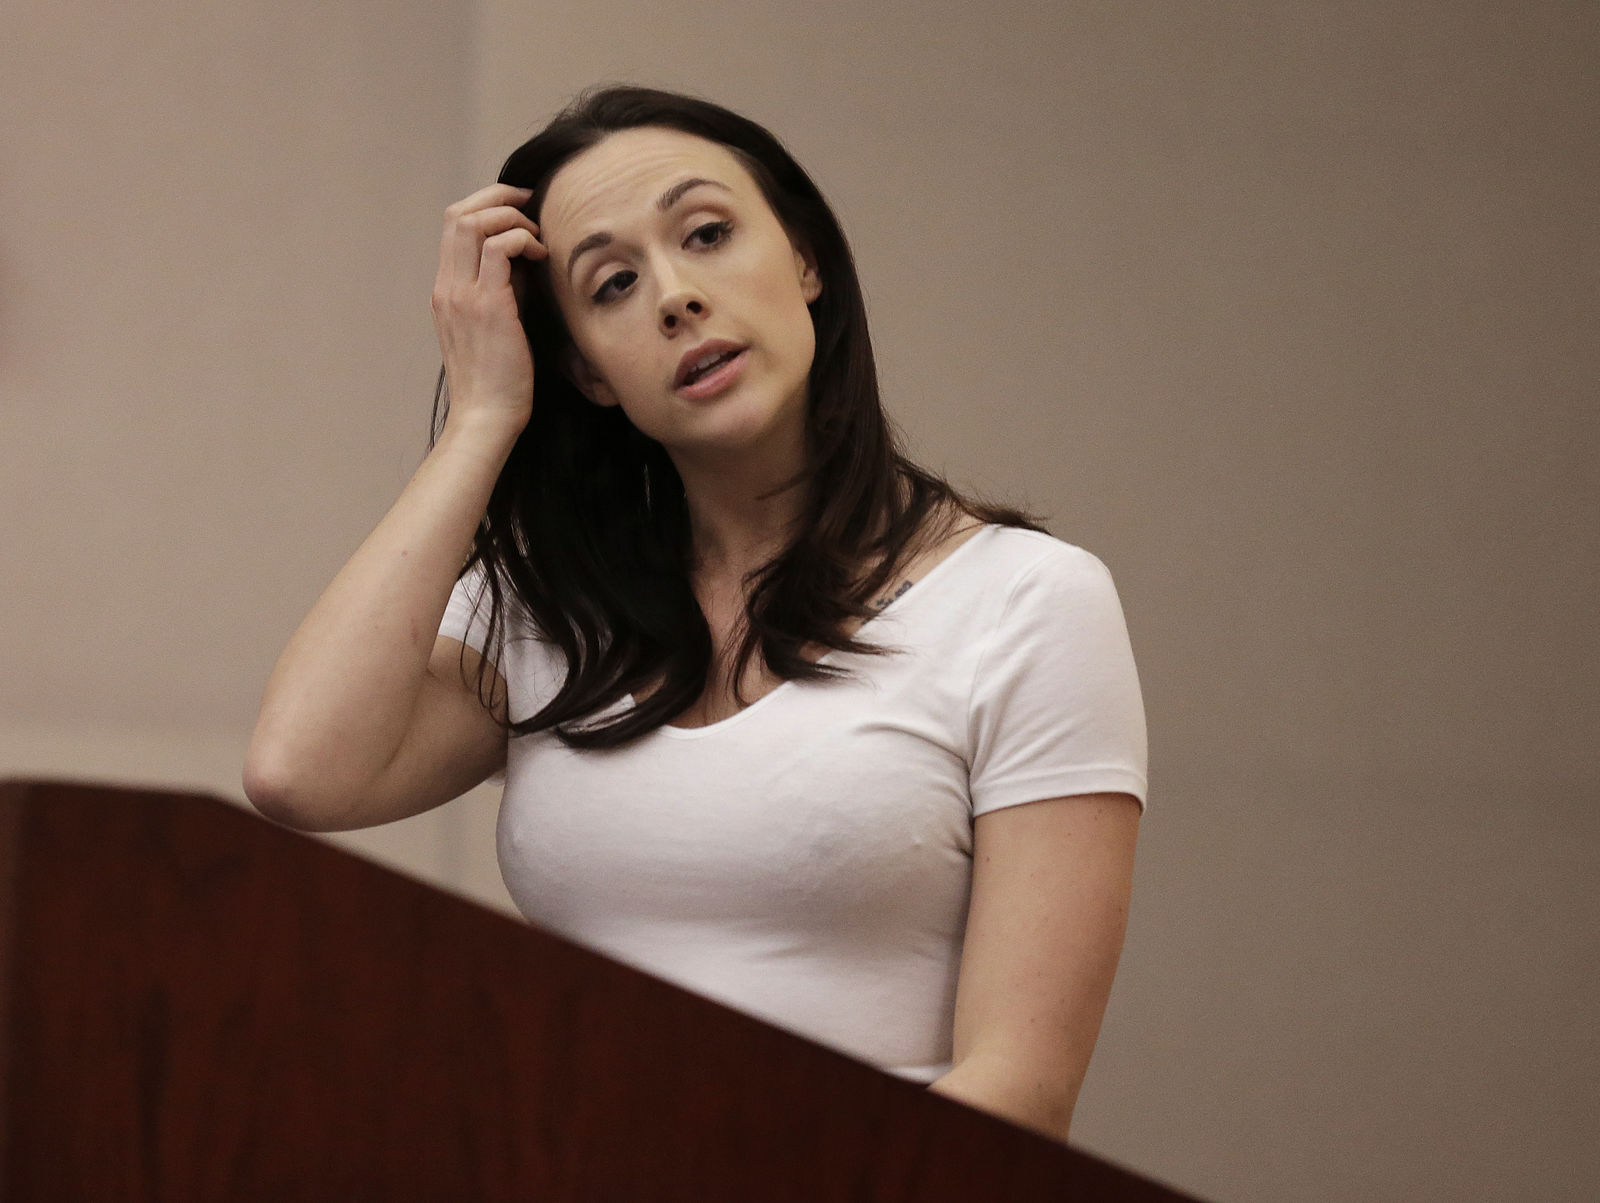 Chanel Preston, Adult Performer's Advocacy Committee President, speaks before the Occupational Safety & Health Standards Board during a hearing Thursday, Feb. 18, 2016, in Oakland, Calif. (AP Photo/Ben Margot)